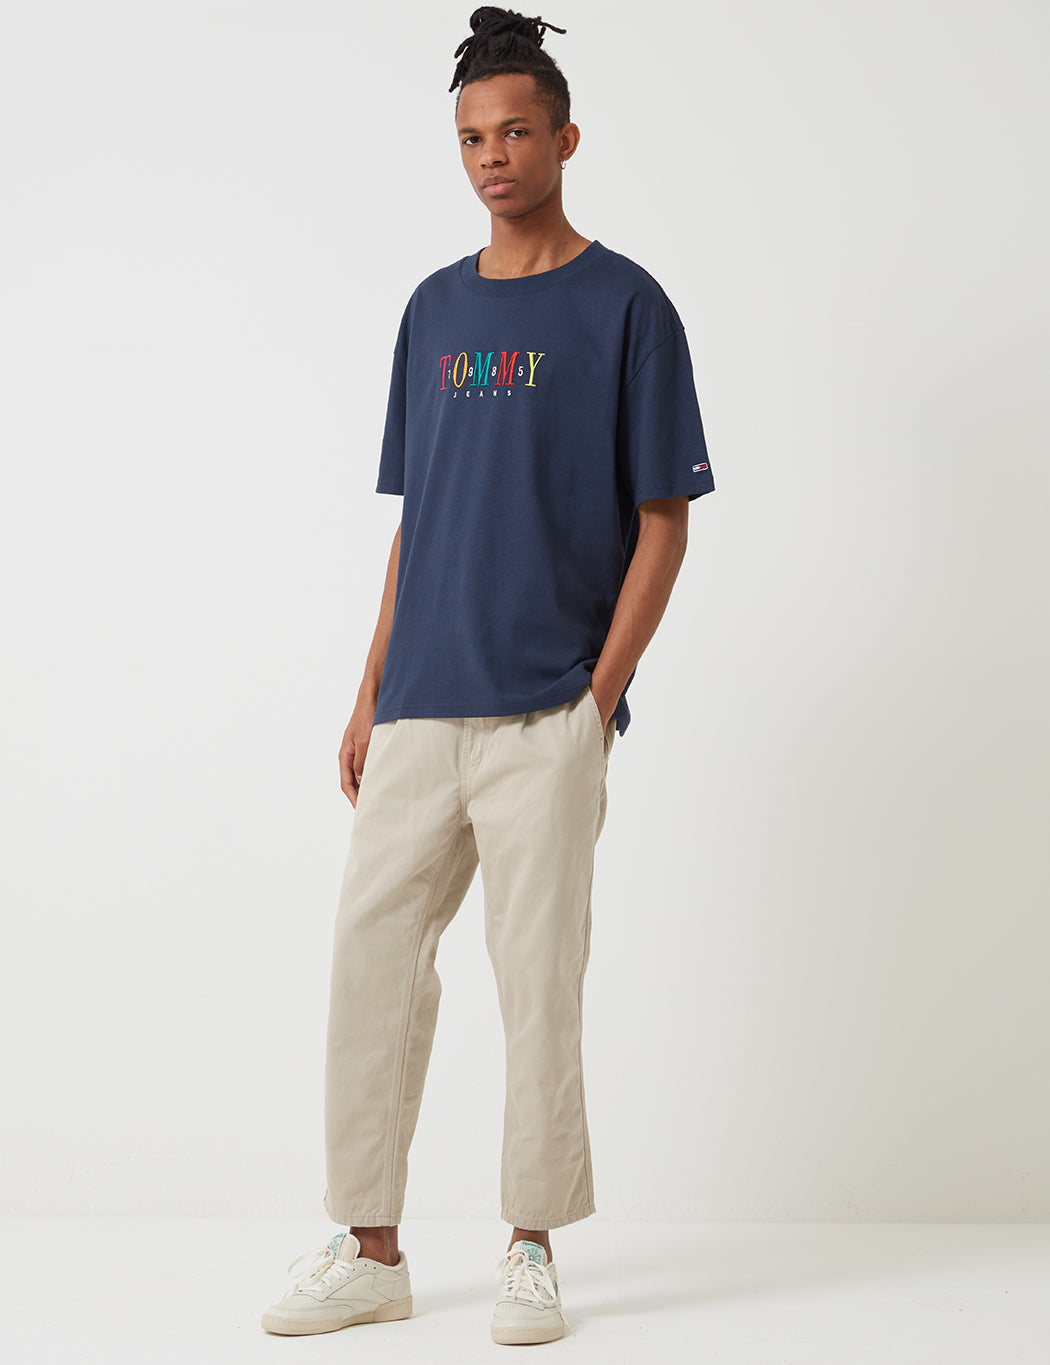 3e0e30aad8 Tommy Hilfiger 85 Short Sleeve T-Shirt - Black Iris | URBAN EXCESS.